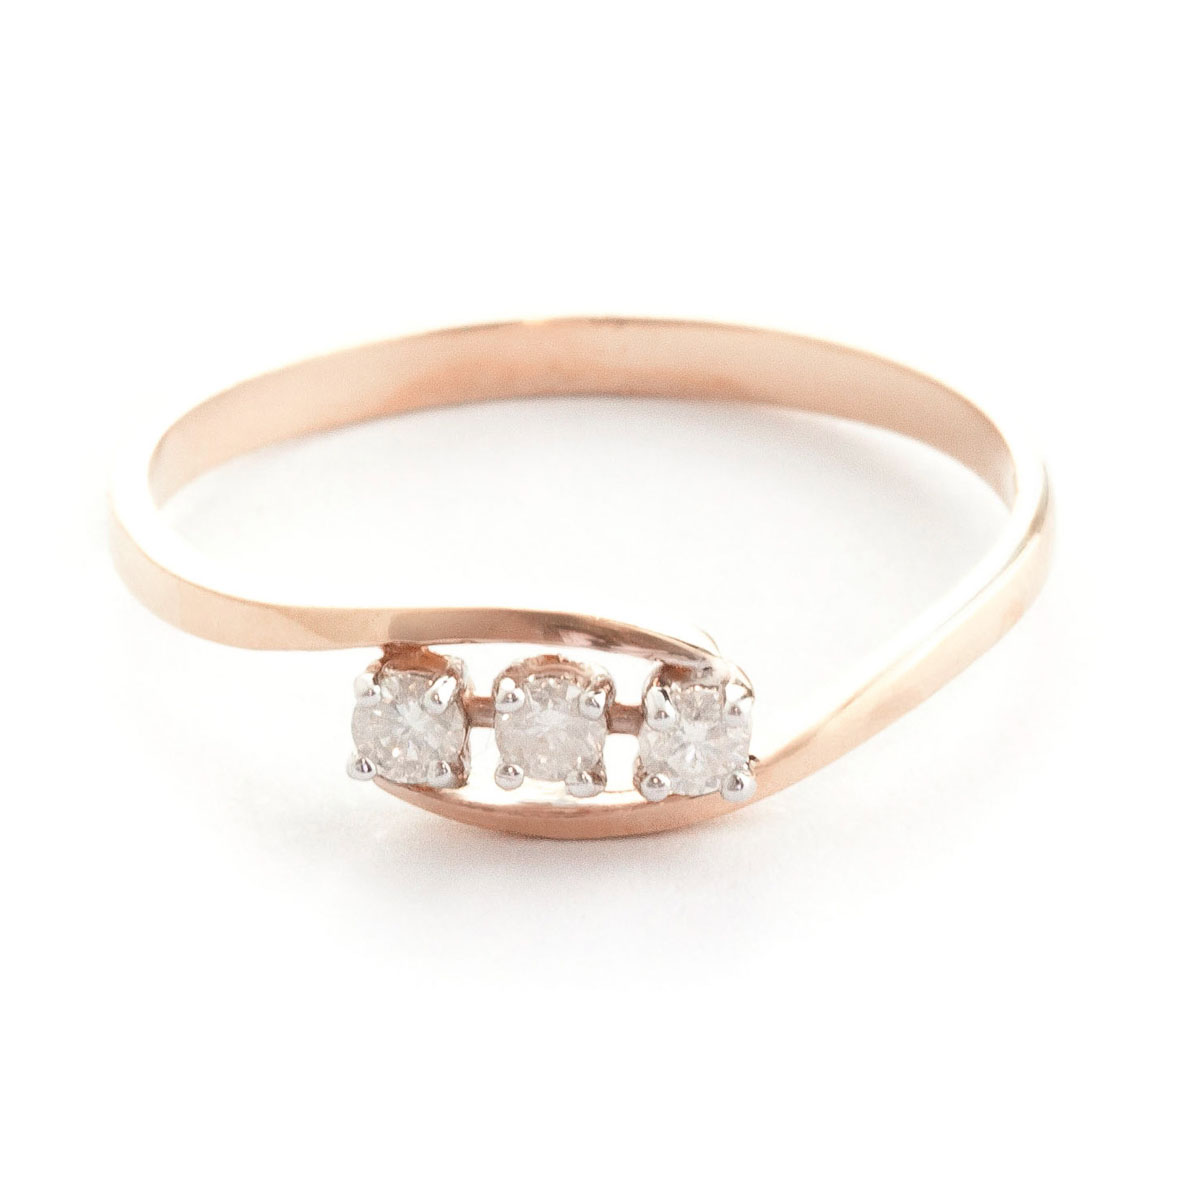 Round Cut Diamond Ring 0.15 ctw in 18ct Rose Gold